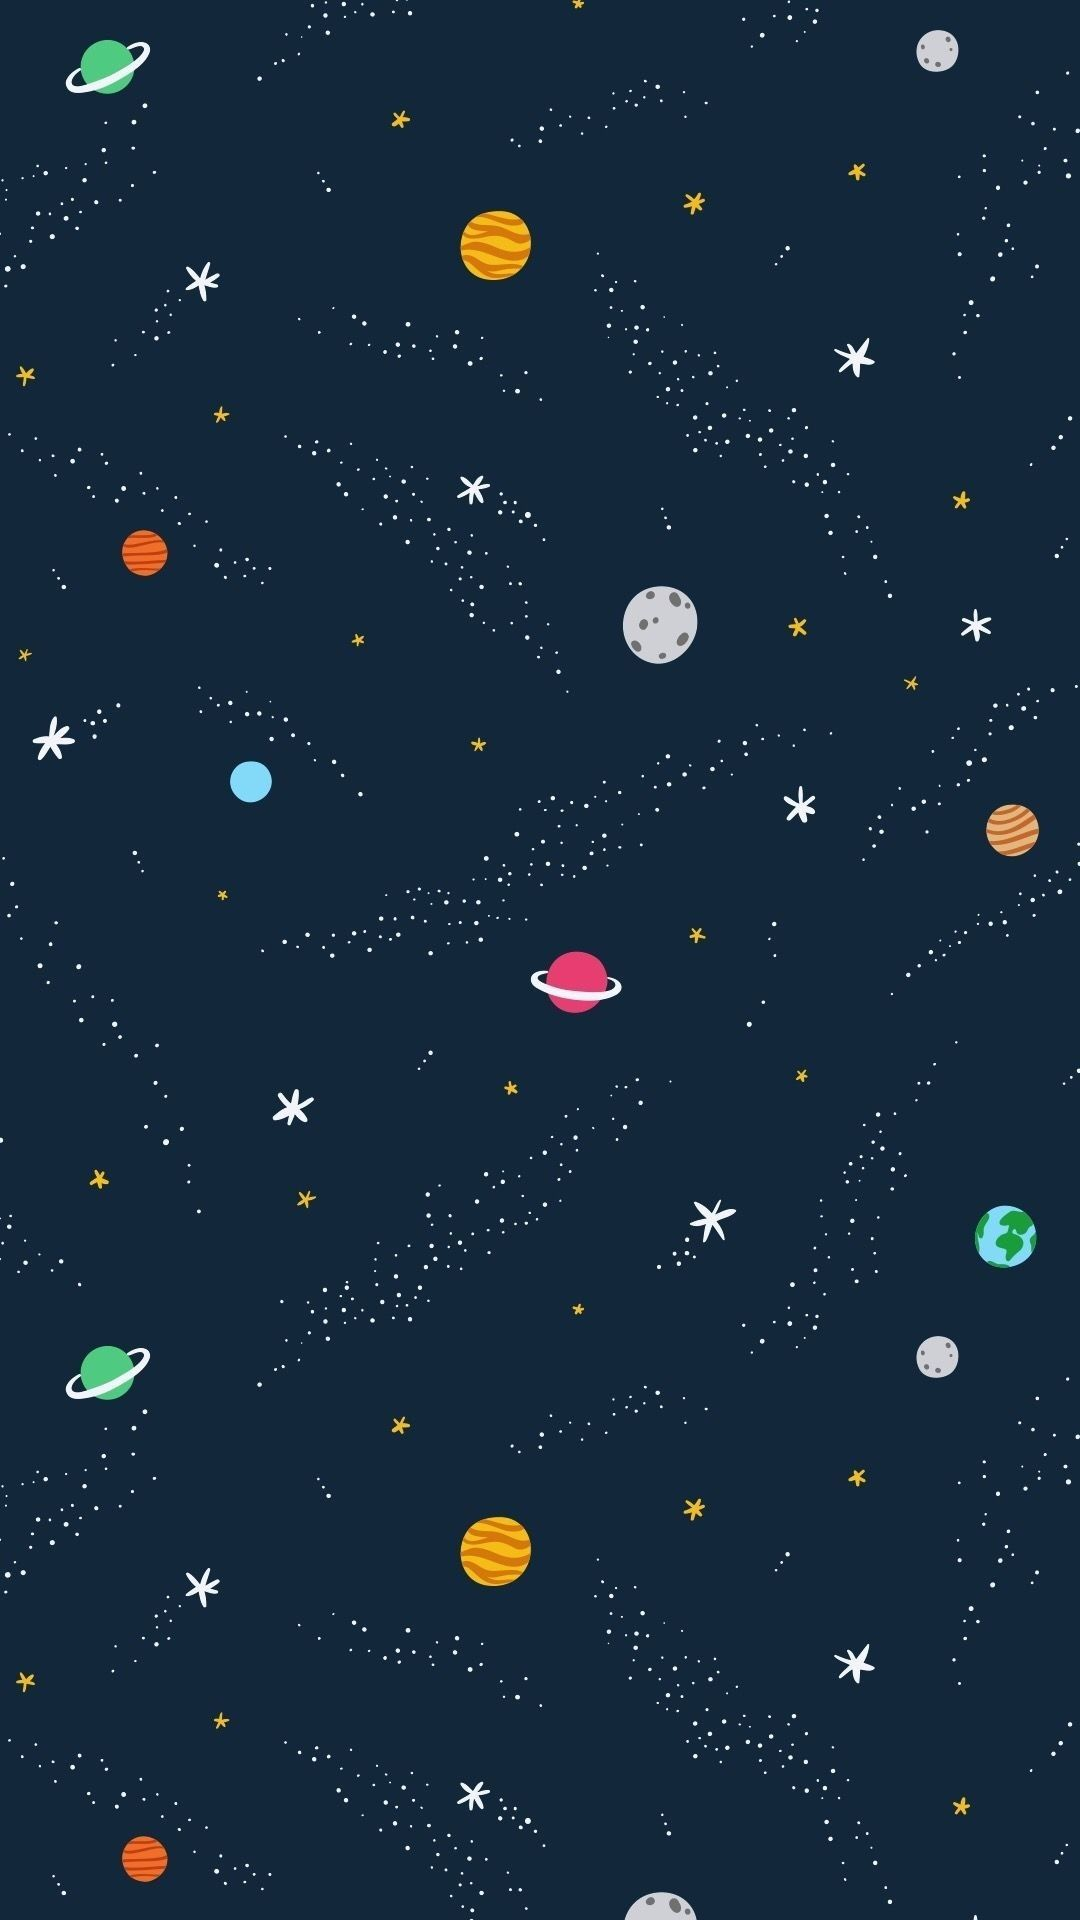 #wallpaper #background #iphone #mobile #space #planets #whatsapp | Wallpapers | Wallpaper ...